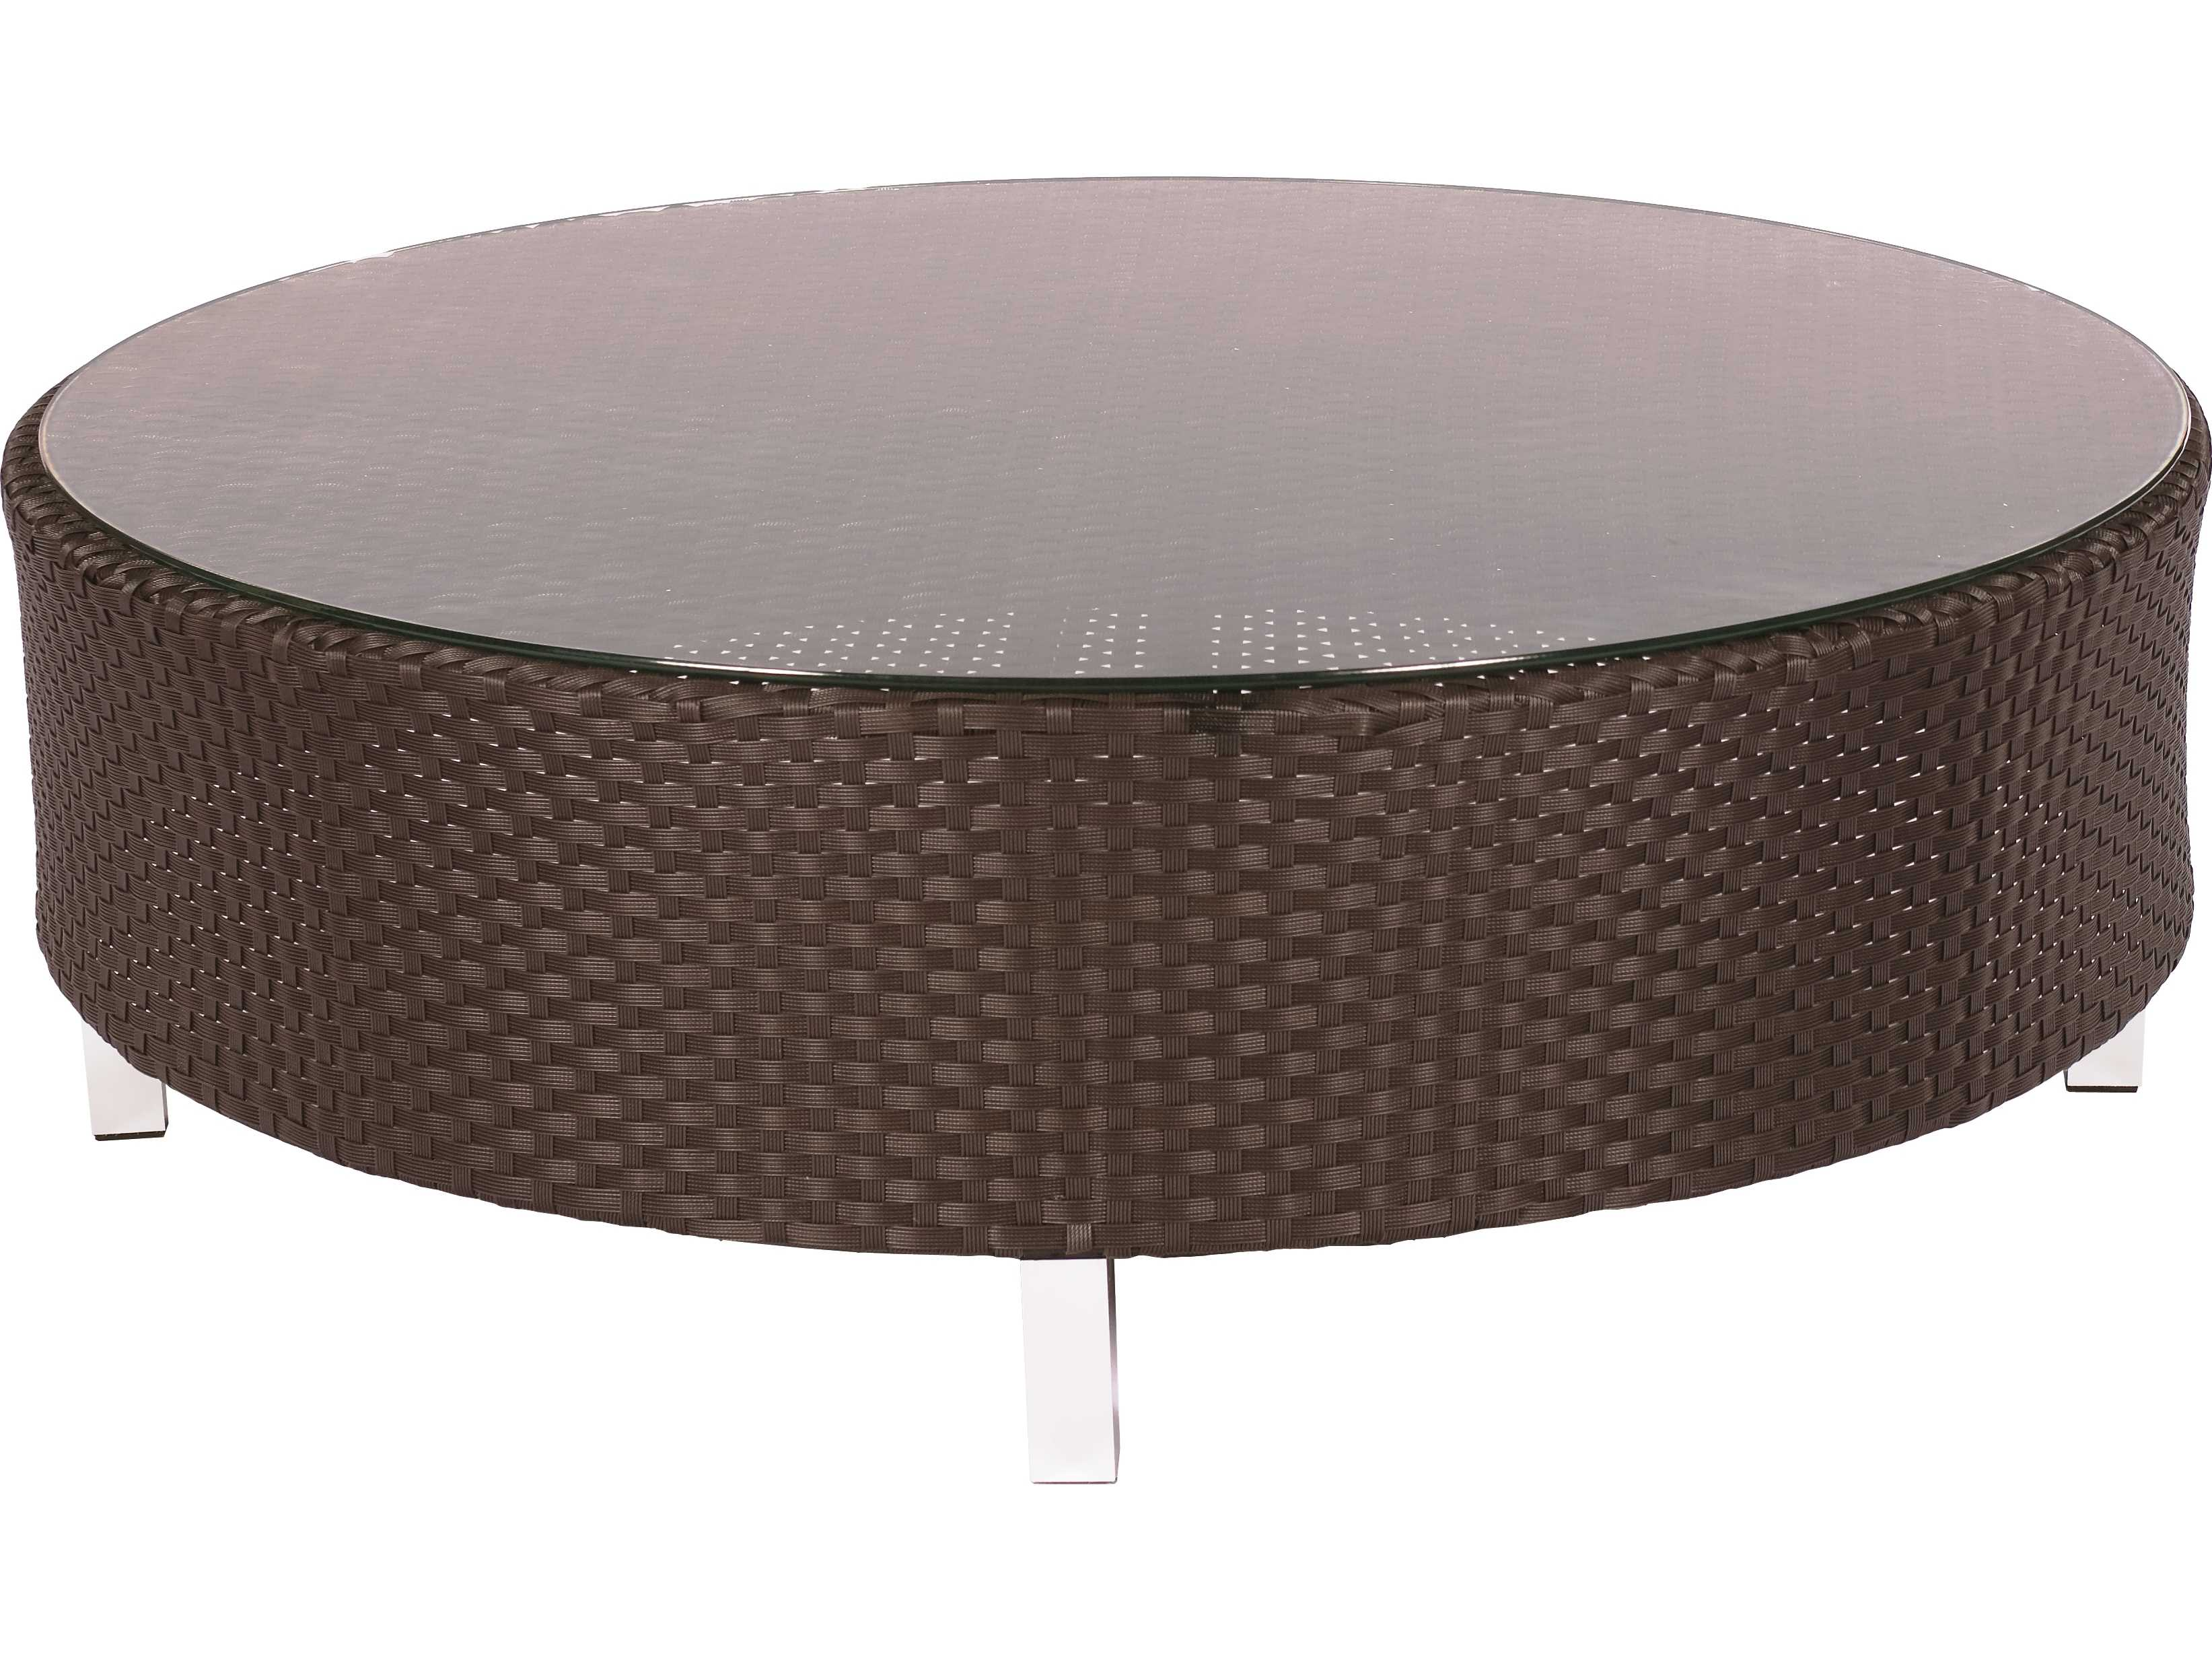 Suncoast Radiate Arc Wicker 48 39 39 Round Glass Coffee Table